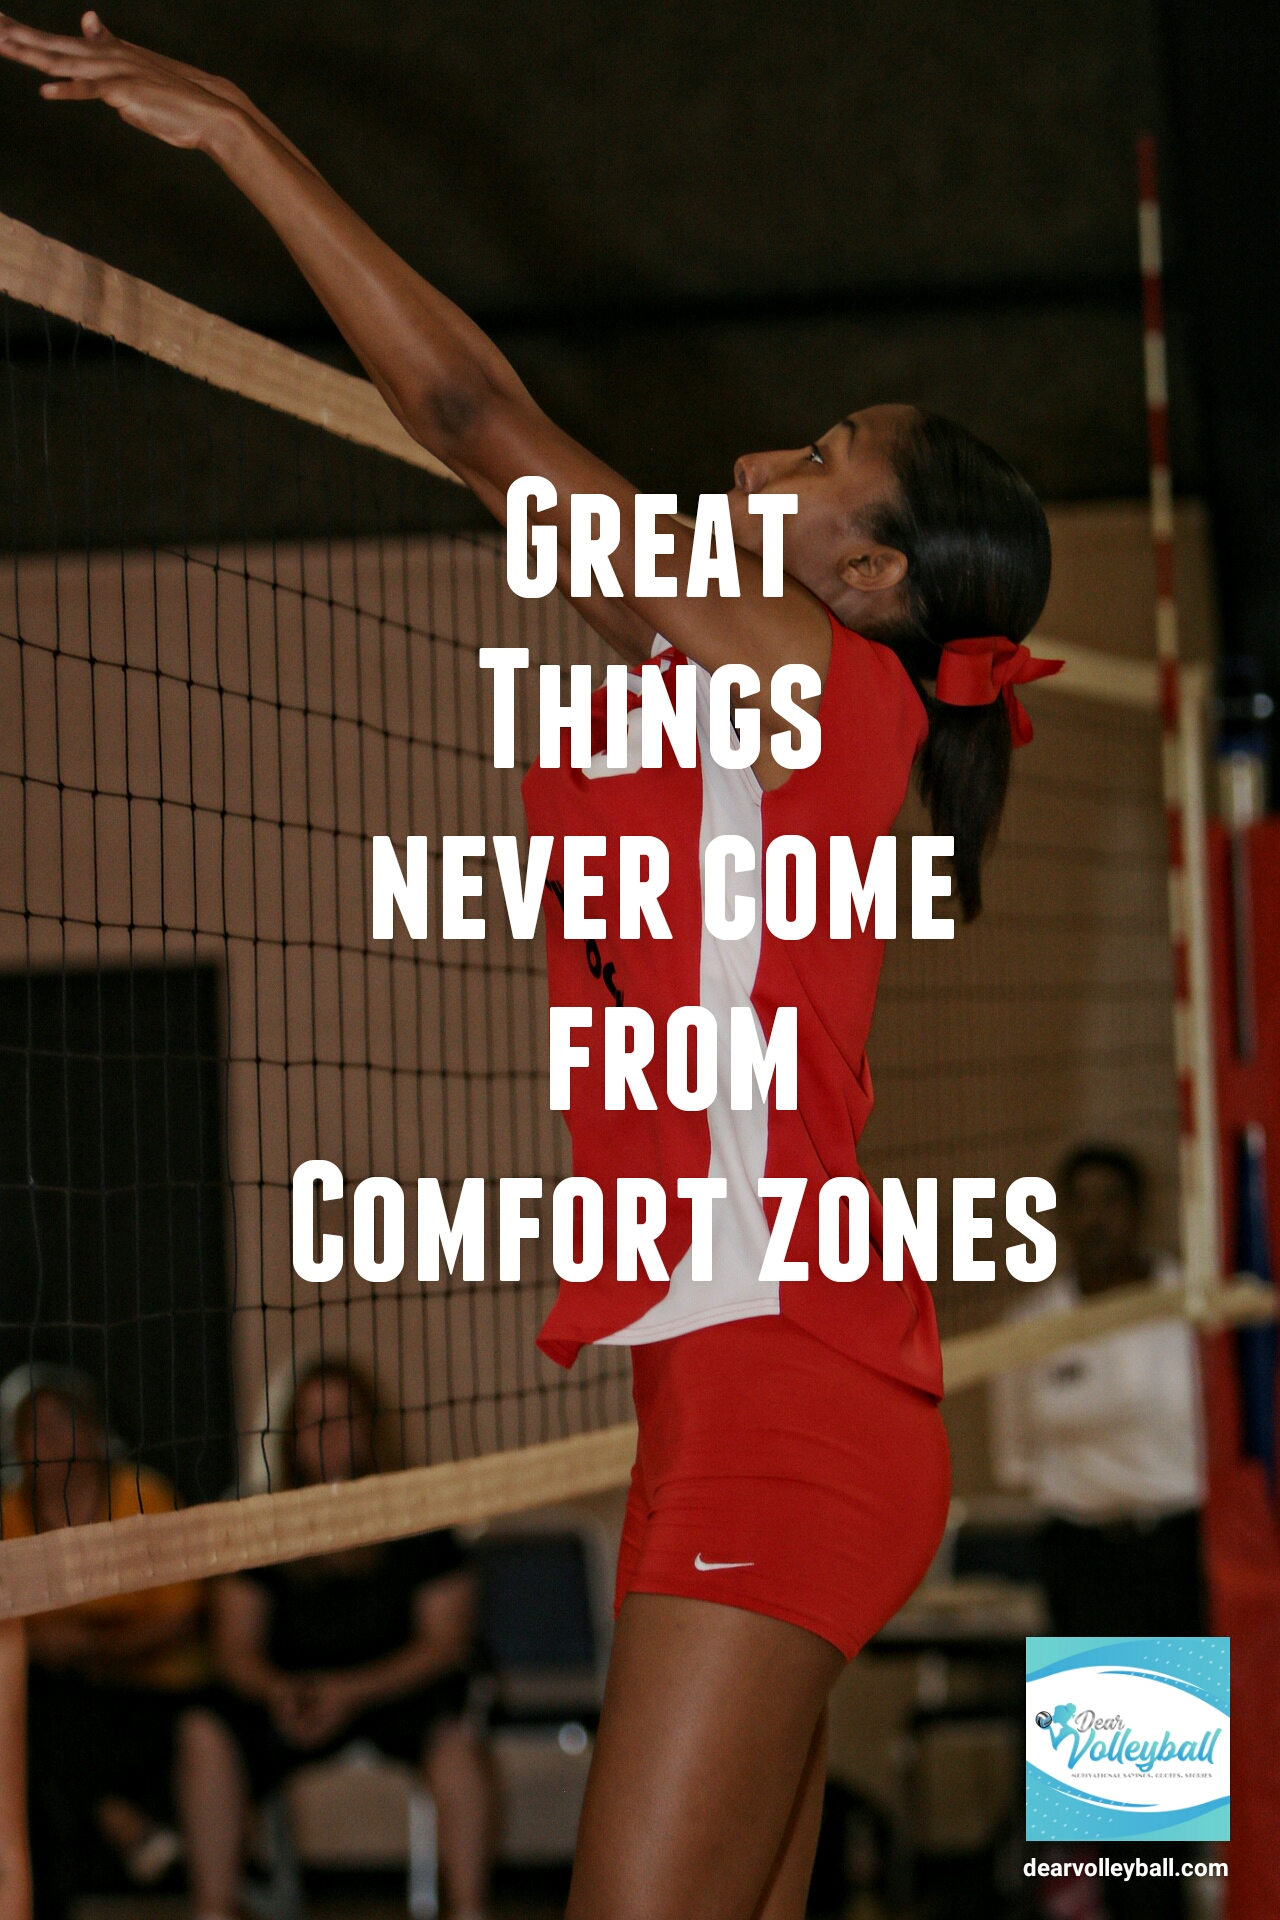 Great things never come from comfort zones and other motivational volleyball quotes on DearVolleyball.com